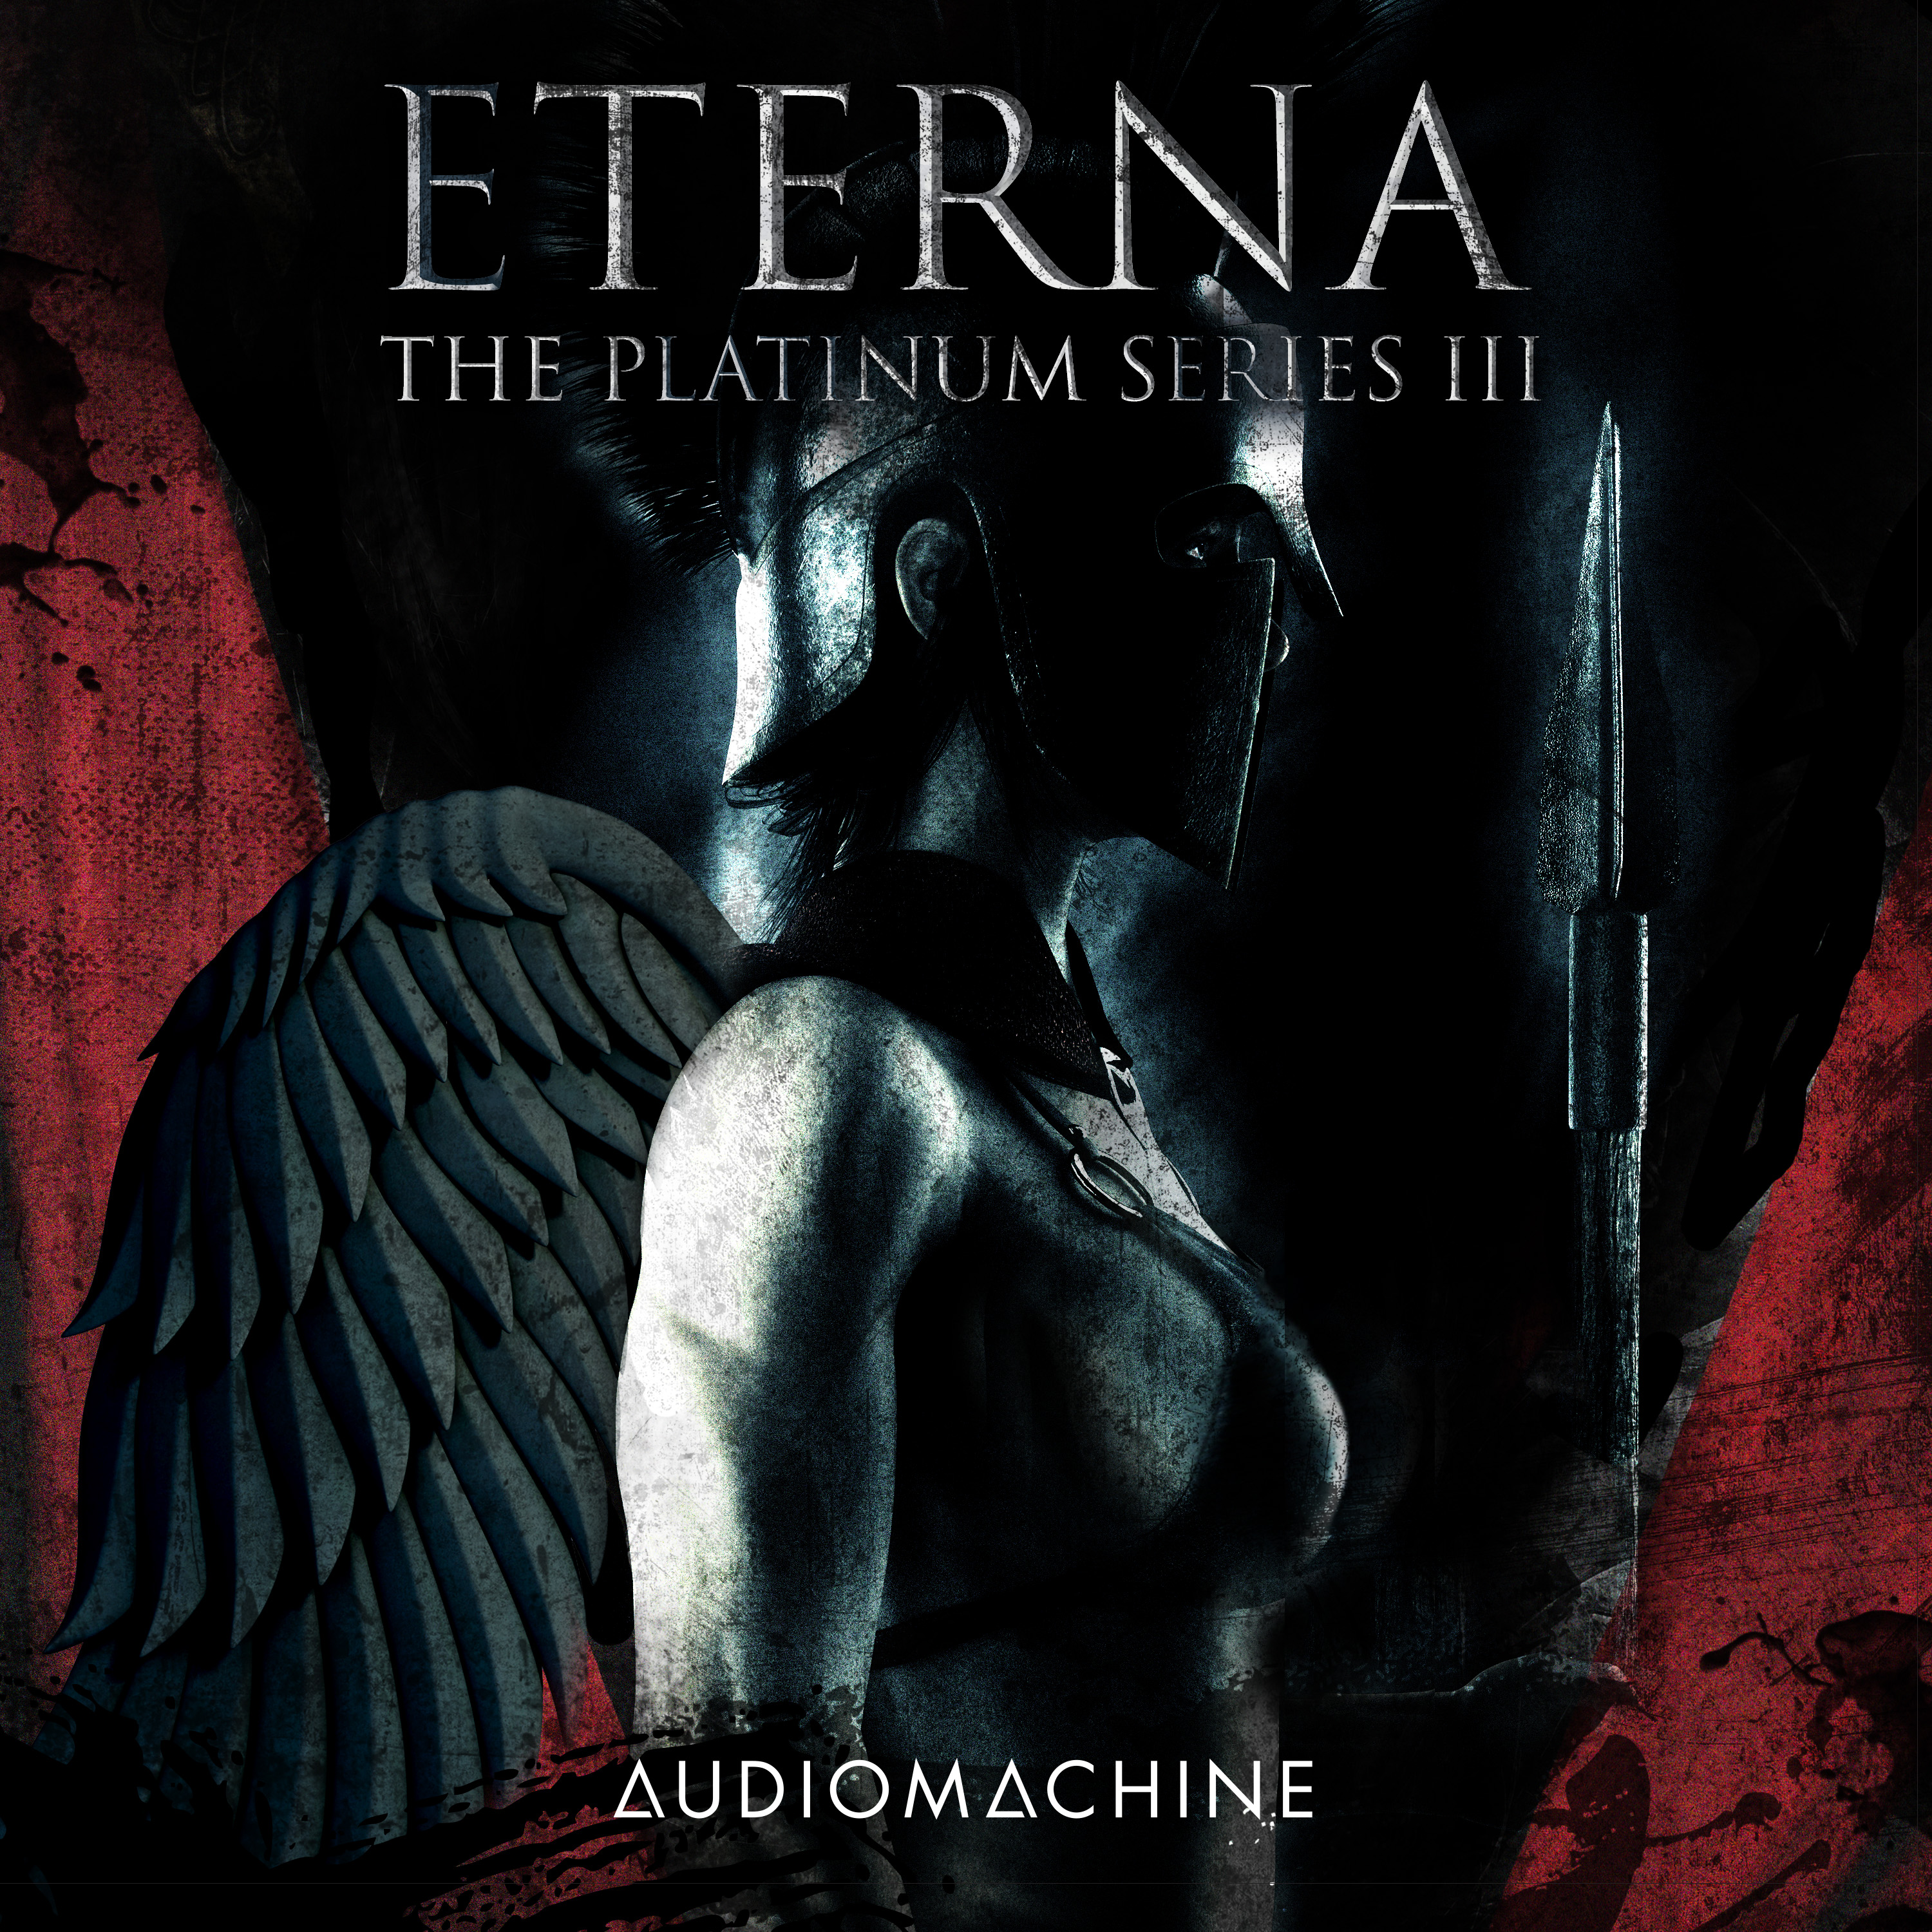 The Platinum Series III: Eterna